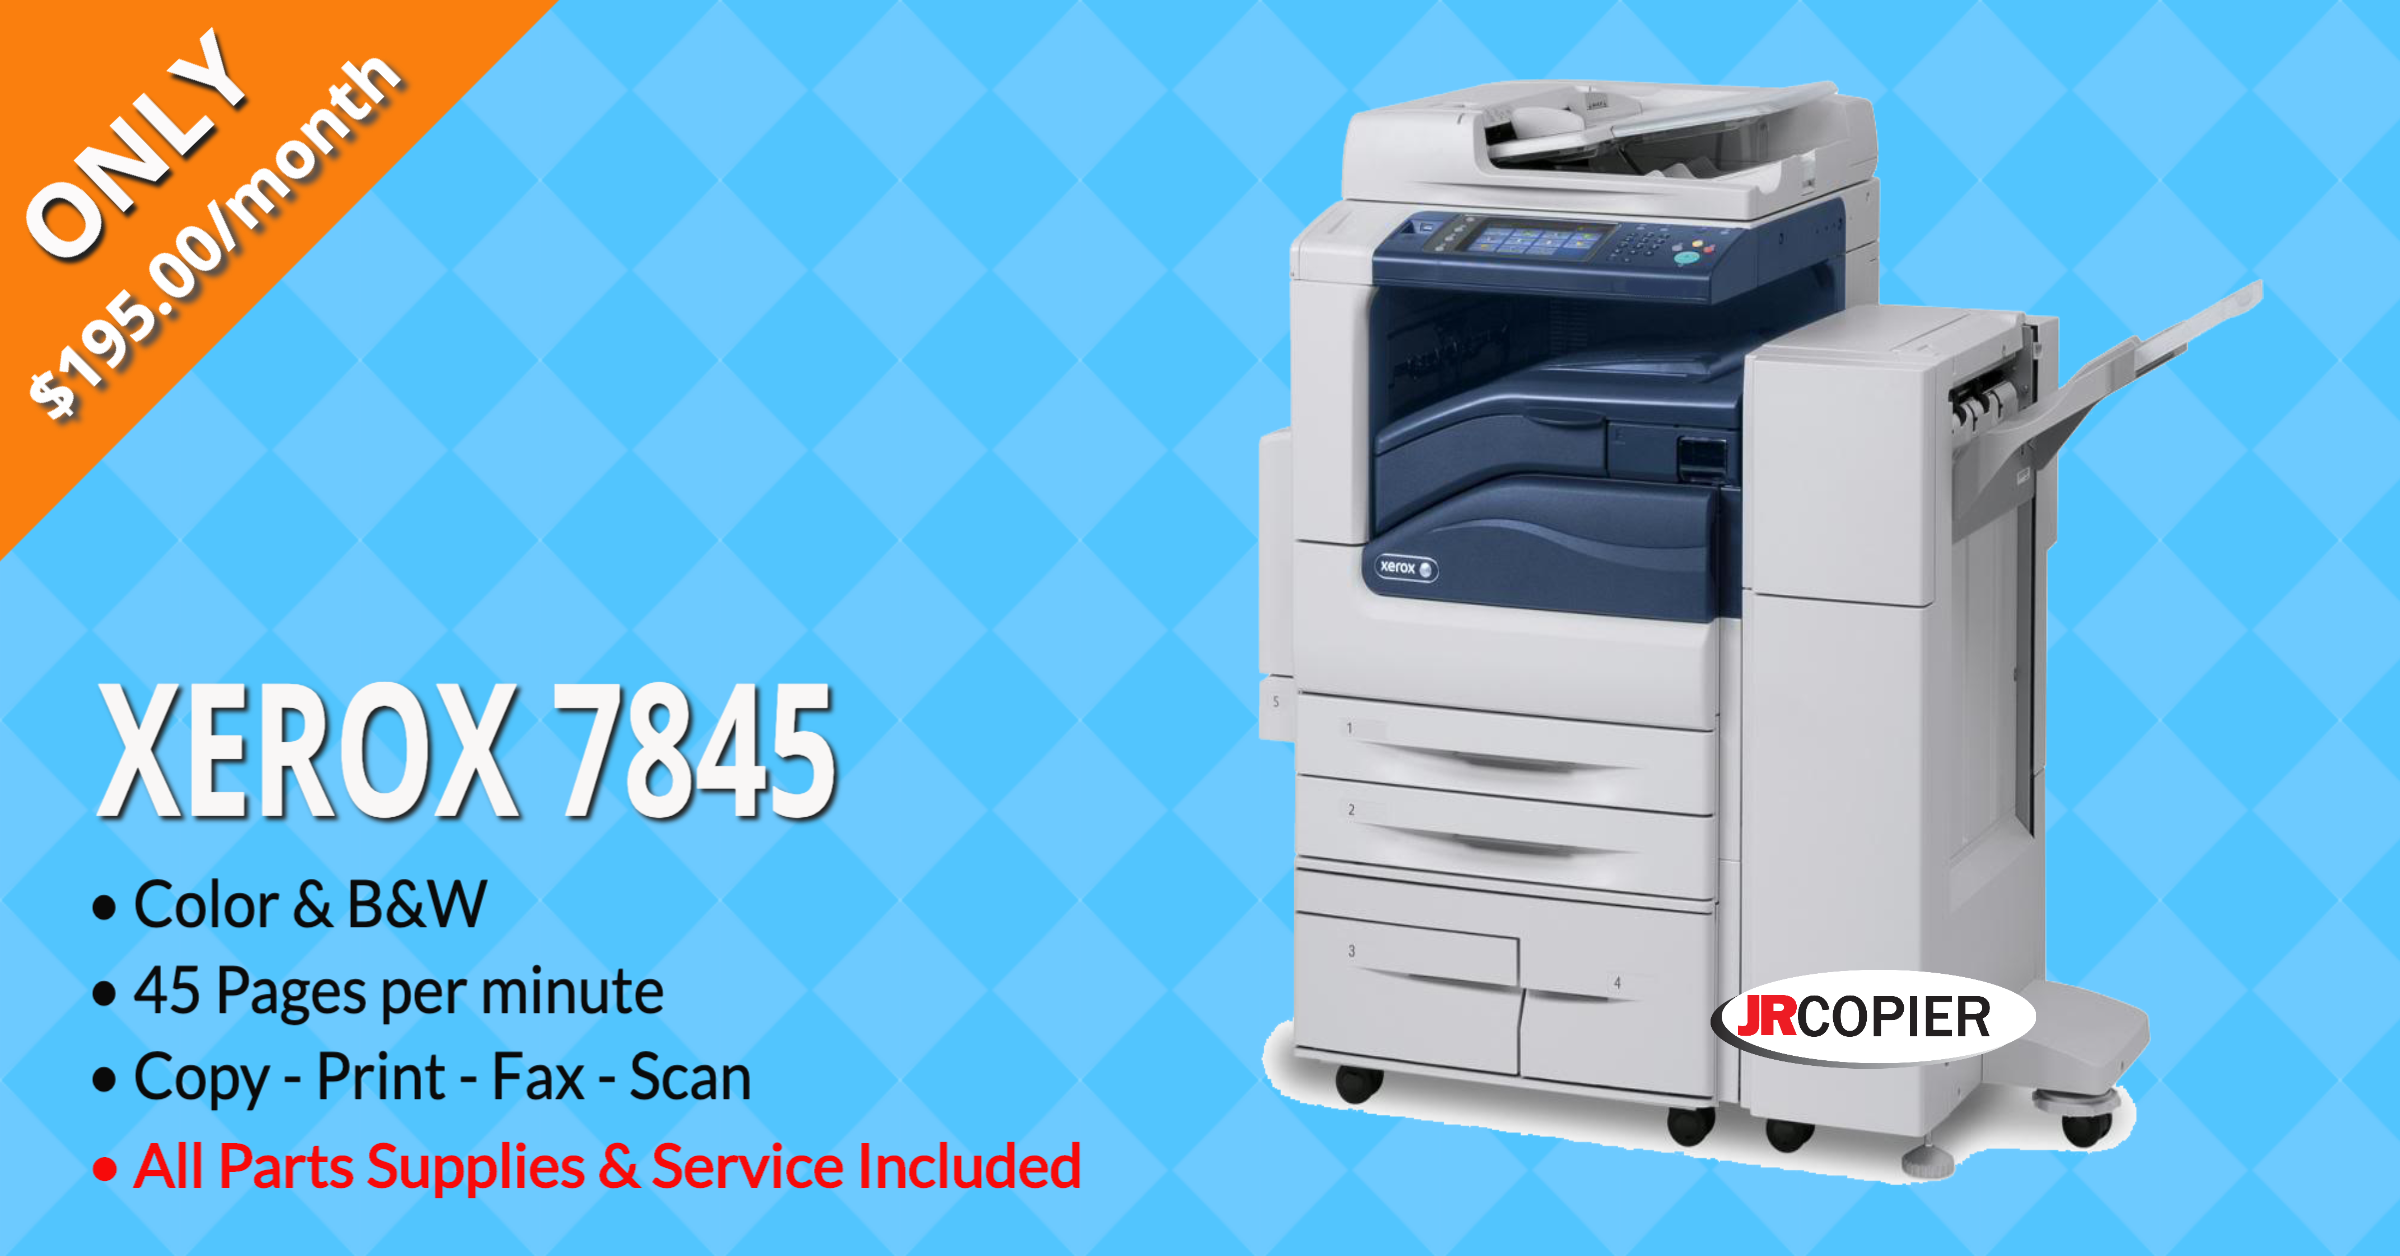 Printer Rental Services 55416, 55424, 55426, 55441